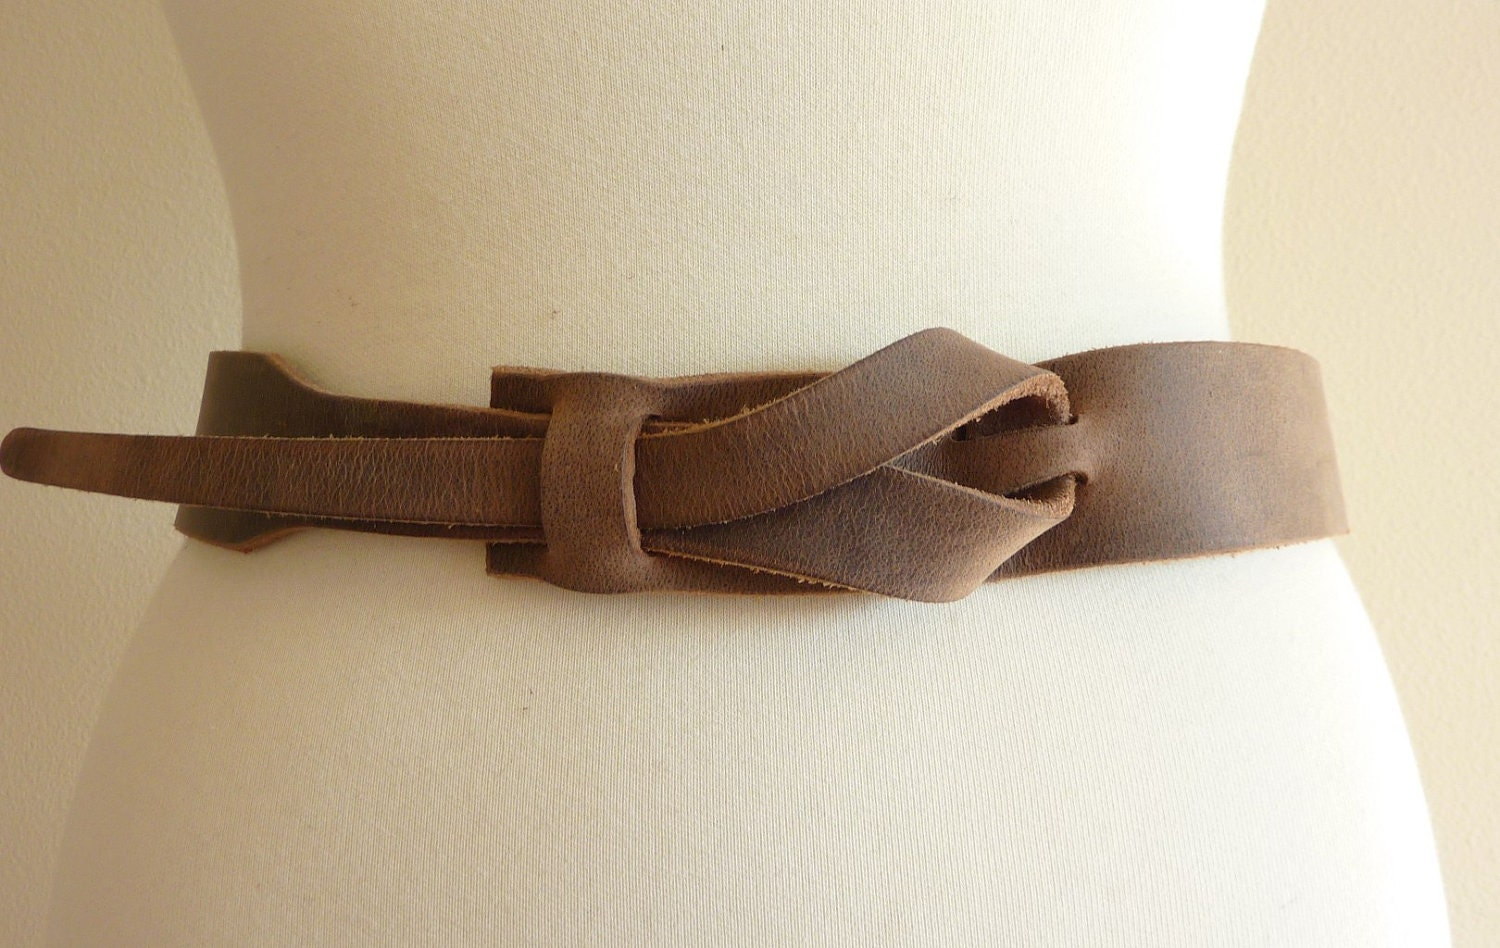 Safari Outback Brown Leather Belt by Muse  1-1/2 inch Nickel- Free  Plus Sizes Available - MuseBelts